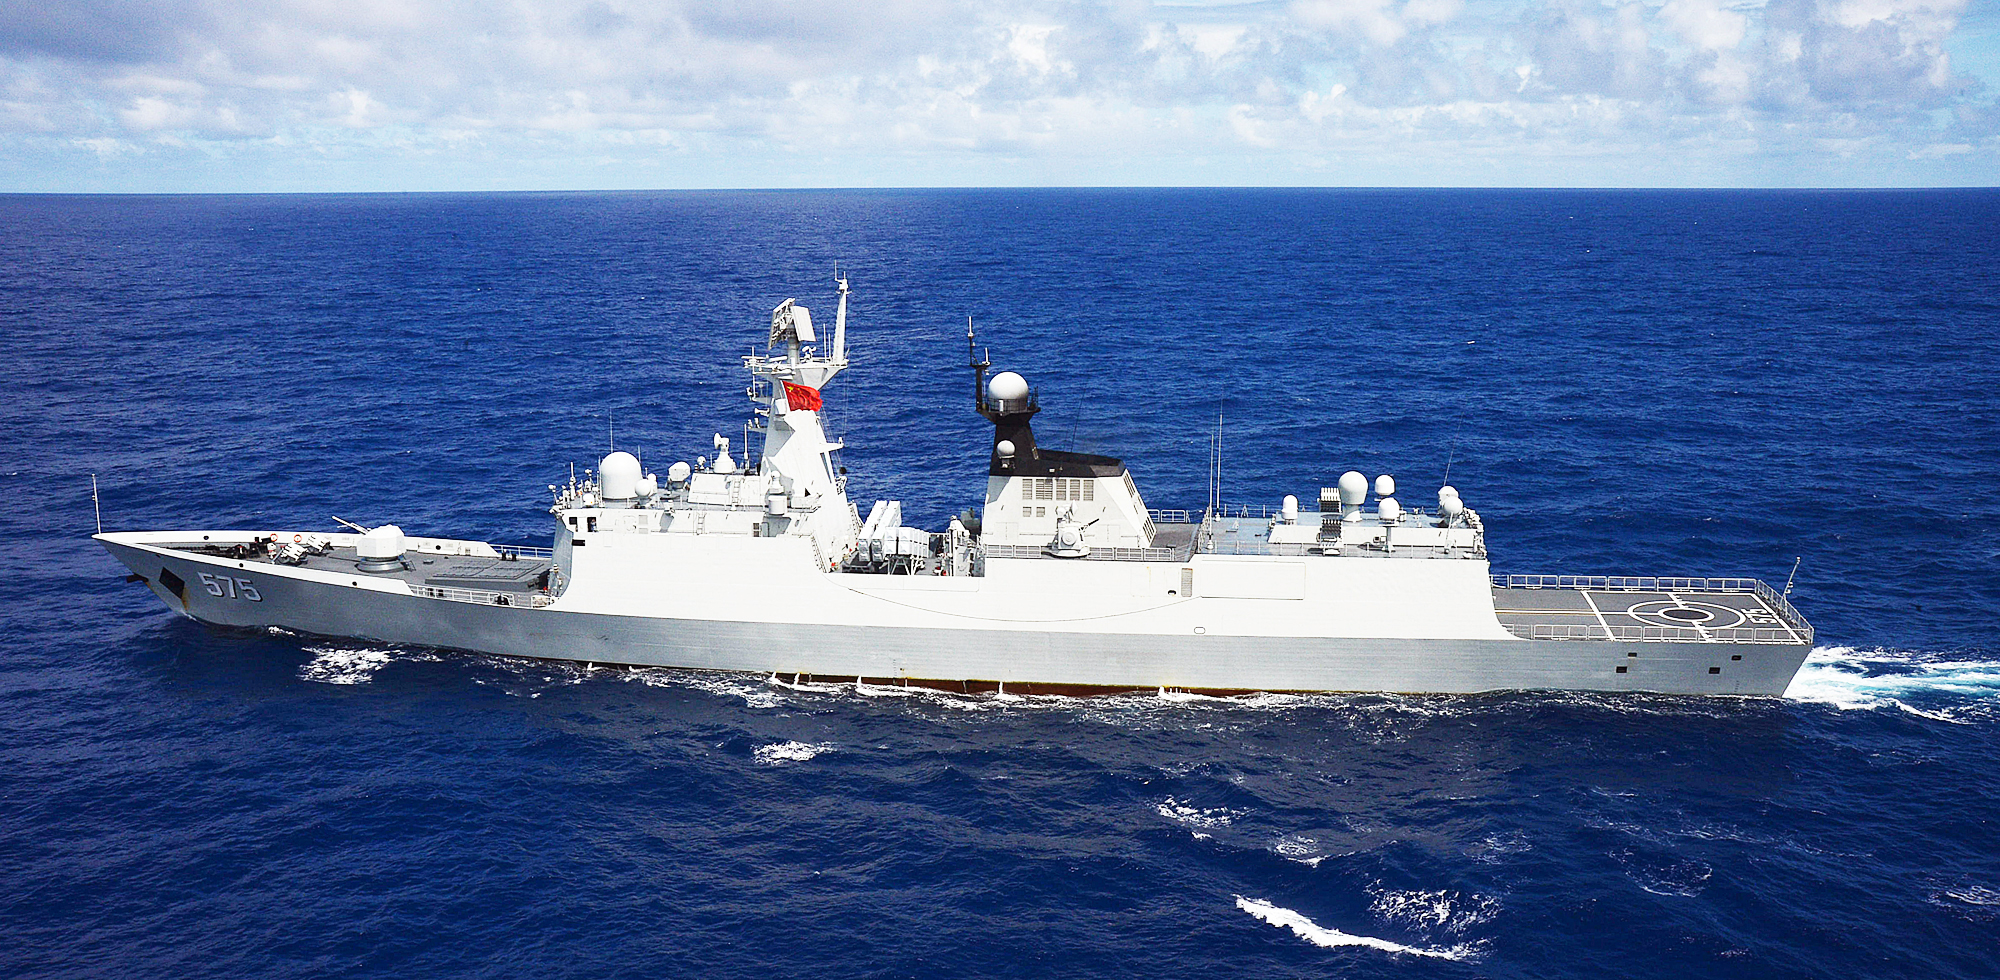 China Launches Joint Naval Drills With Malaysia In Strait Of Malacca Drill Press Parts 2 10 From 21 Votes 3 22 Representing 15 International Partner Nations During Rim The Pacific Exercise 2014 Chinese Navy Is Taking Part Its First